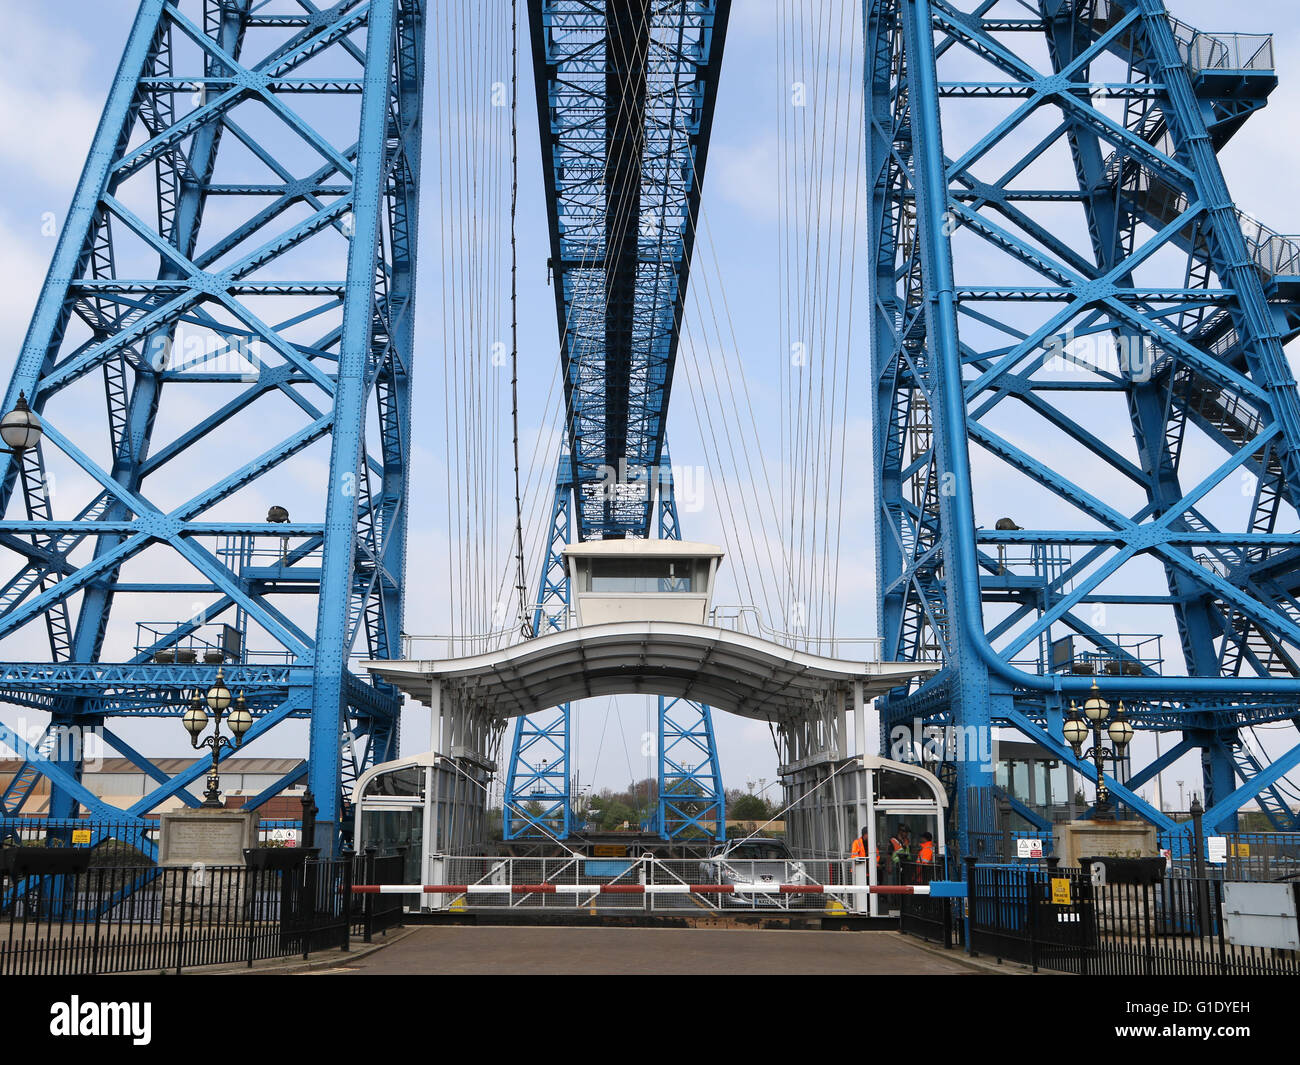 The Transporter Bridge across the river Tees in Middlesbrough. - Stock Image